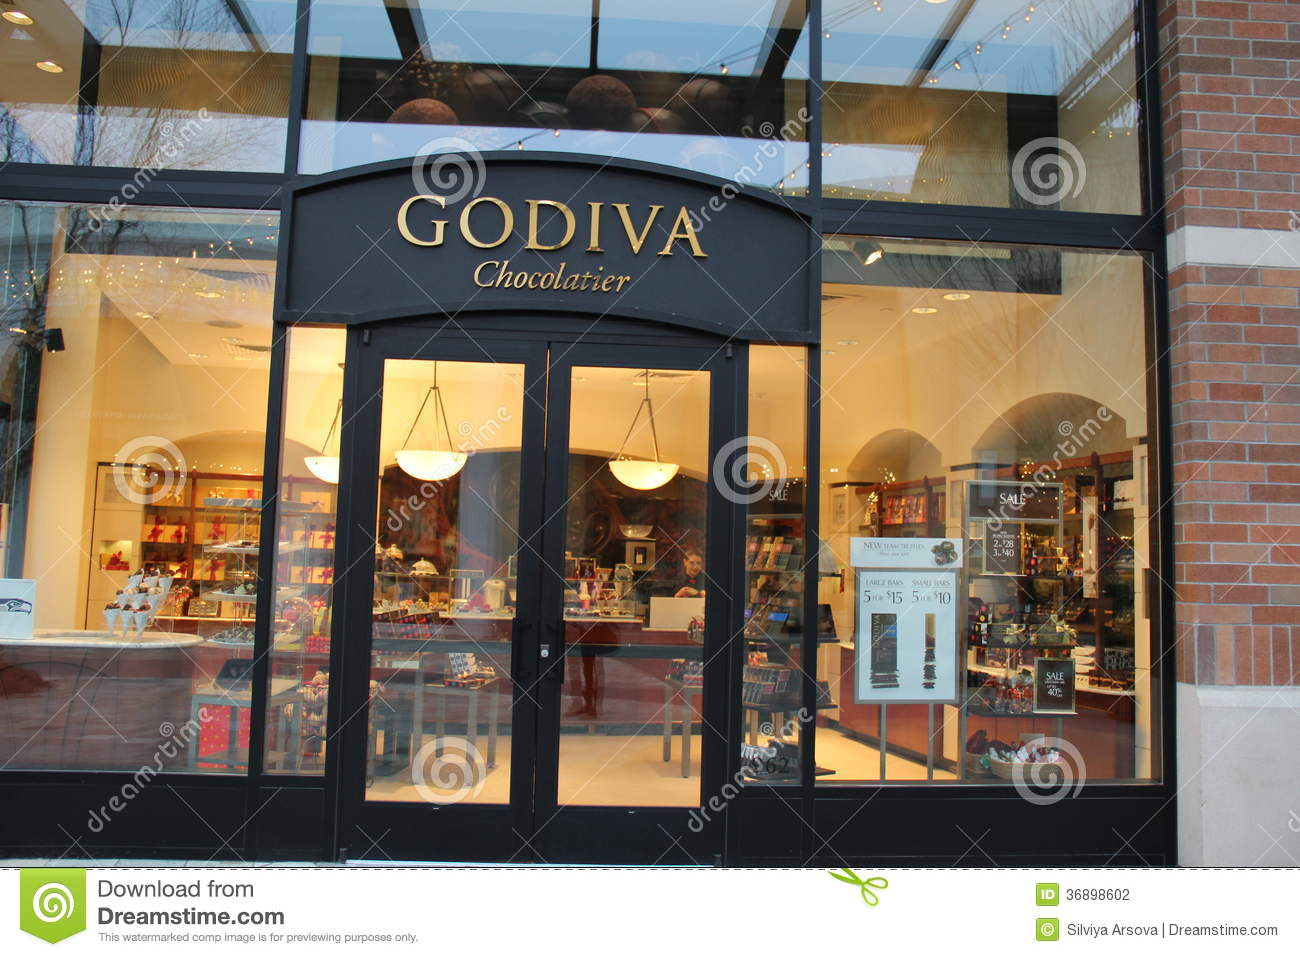 102bf9abb906 Godiva is a manufacturer of premium chocolates and related products.